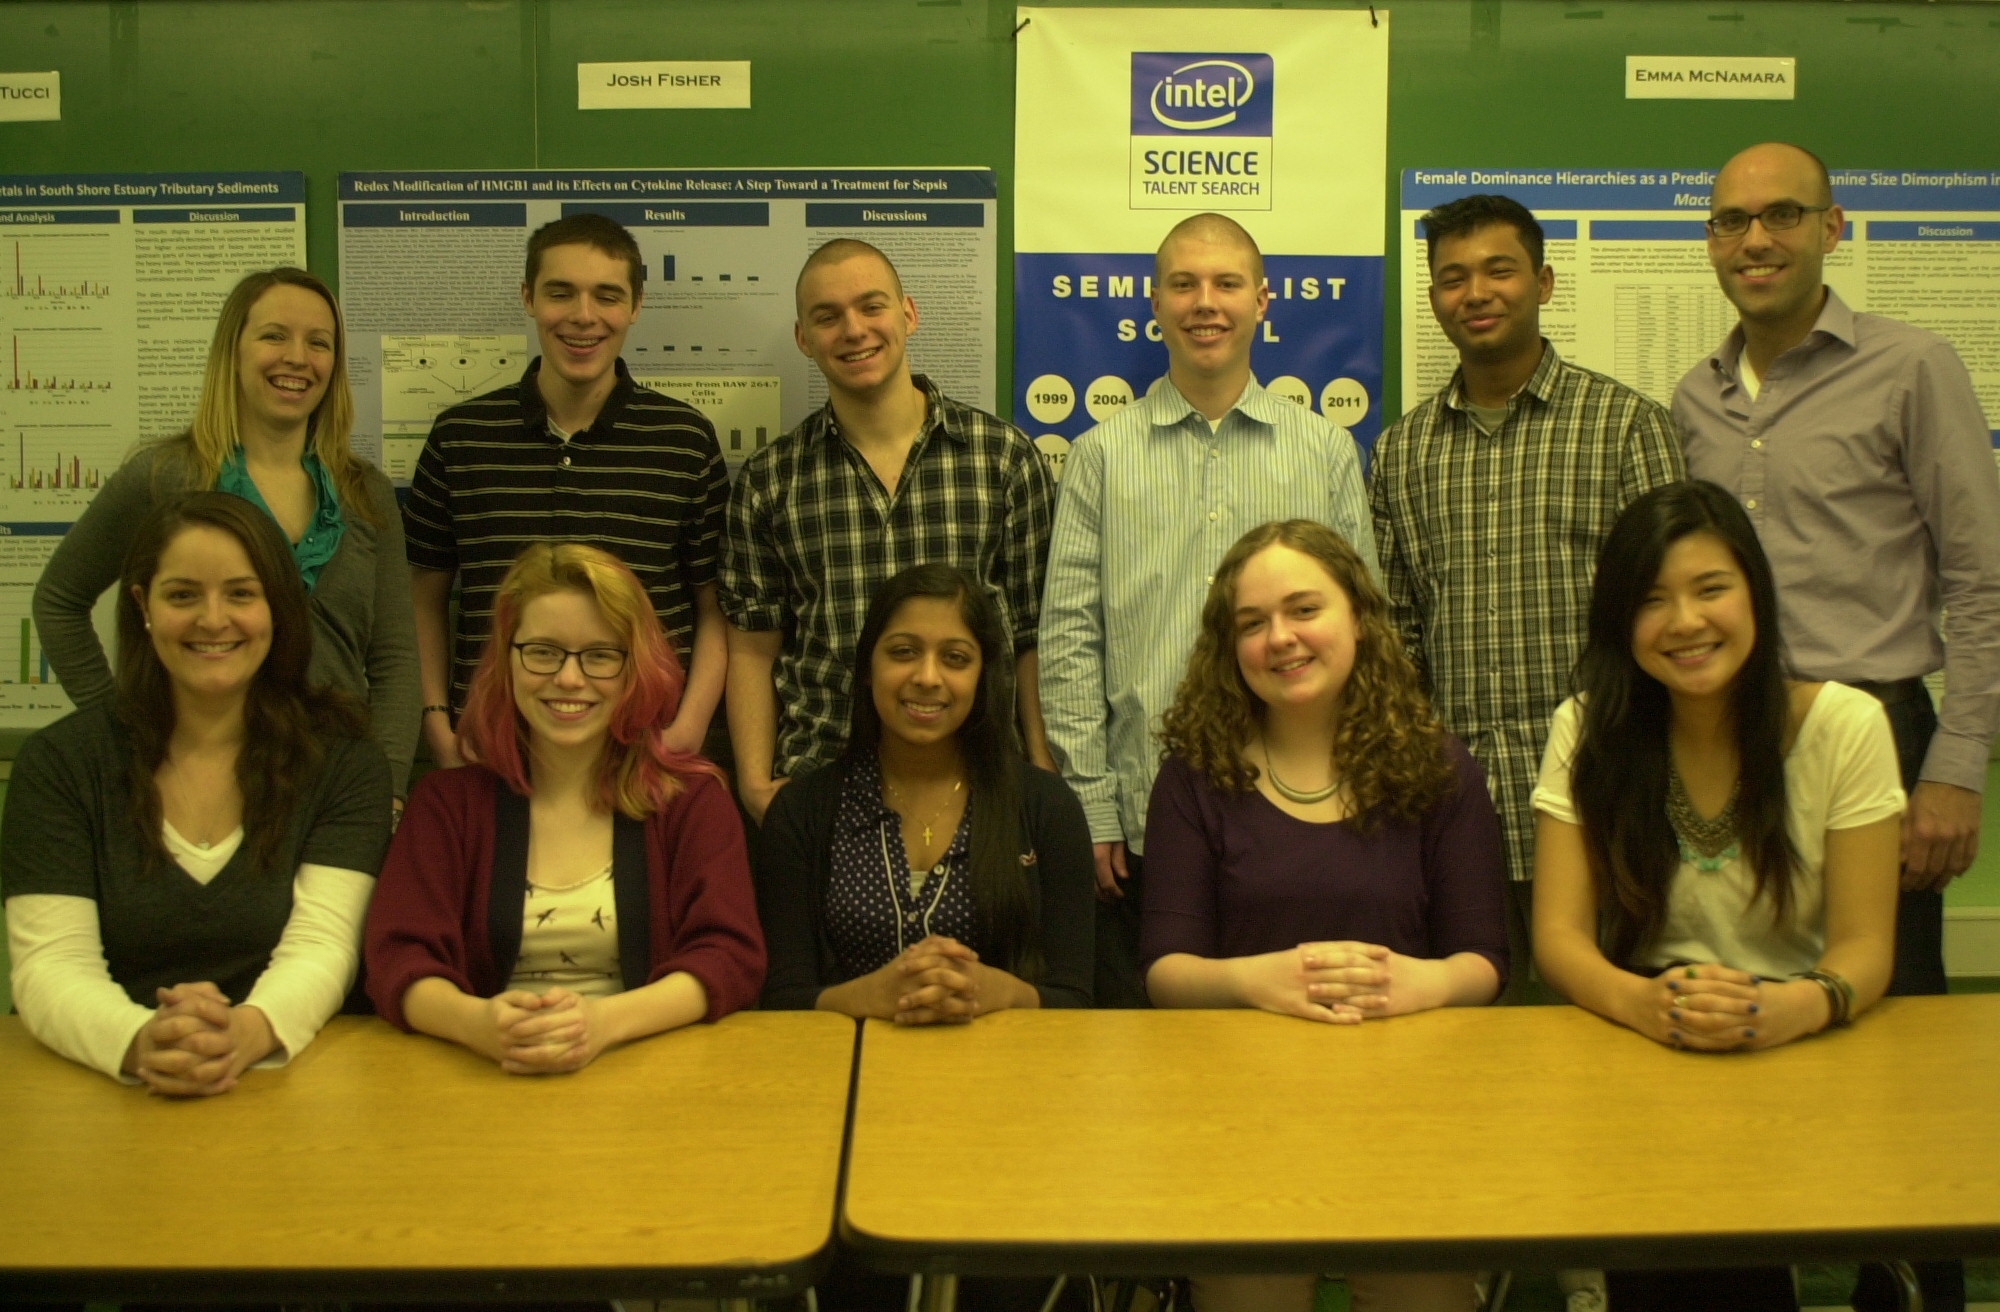 In all, eight Calhoun High School students were recently honored in the Intel Science Talent Search and the Long Island Science and Engineering Fair. They are, top row, second from left, Christian Tucci, Joshua Fisher, Tim Leimbach, Tasfiqual Chowdhury; bottom row, second from left, Brigid Maloney, Preetha Phillips, Emma McNamara and Jocelyn Yu. They were joined by their Authentic Science Research Program advisers, Jennifer Pefanis, top left, Nick Pappas, top right and Kim Lascarides, lower left.